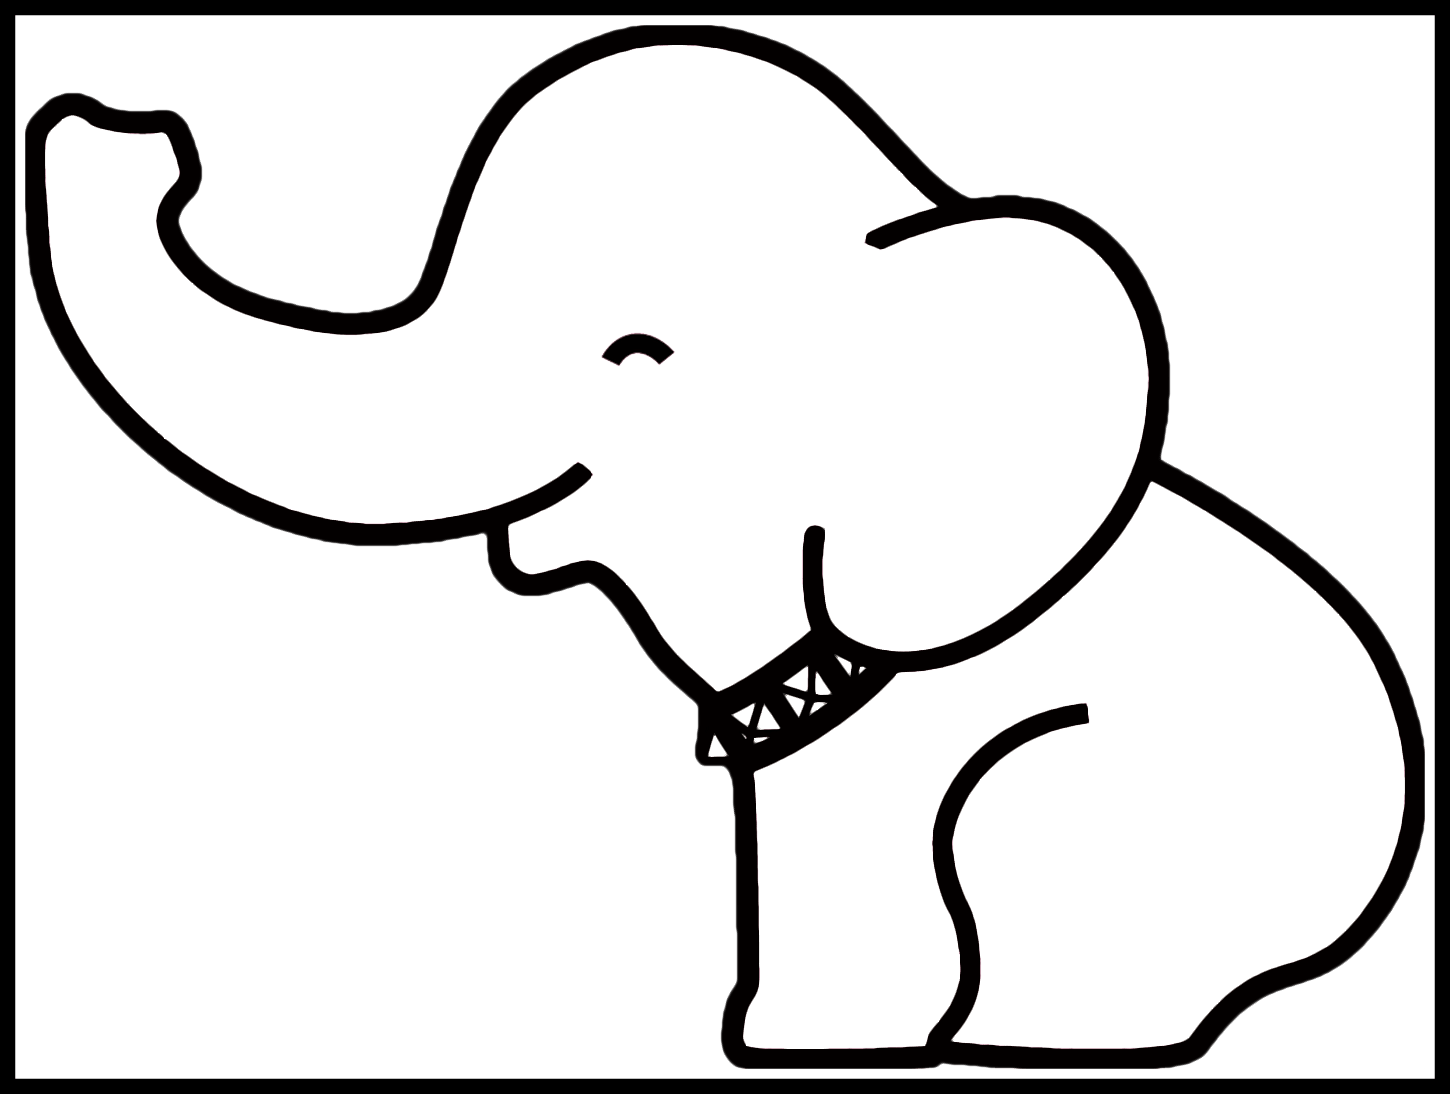 Pig Outline Drawing Baby Elephant Easy Drawing Clipart Full Size Clipart 4058471 Pinclipart